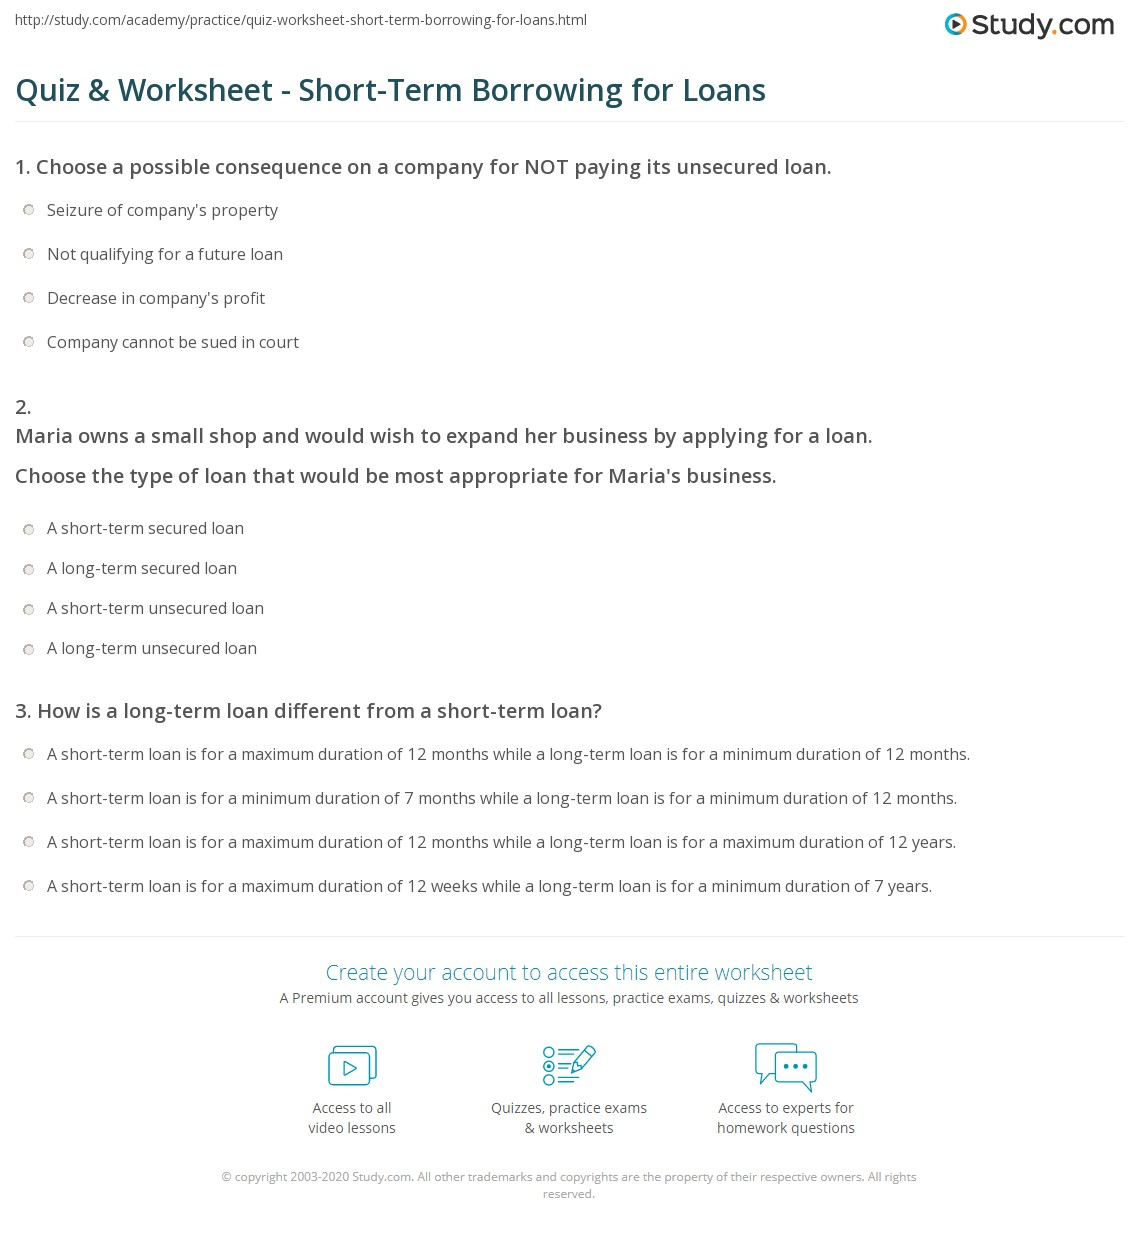 Quiz & Worksheet - Short-Term Borrowing for Loans | Study.com